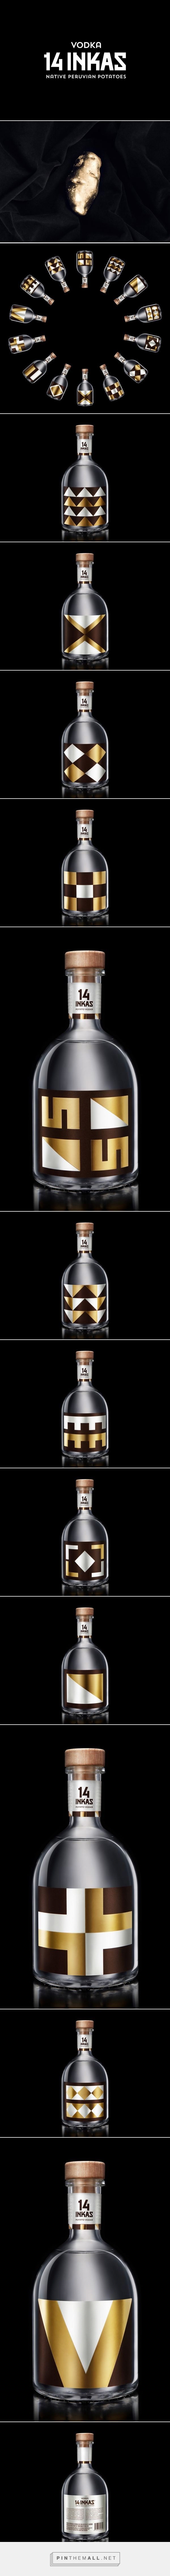 14 Inkas Vodka packaging design by IS Creative Studio - http://www.packagingoftheworld.com/2017/11/14-inkas.html